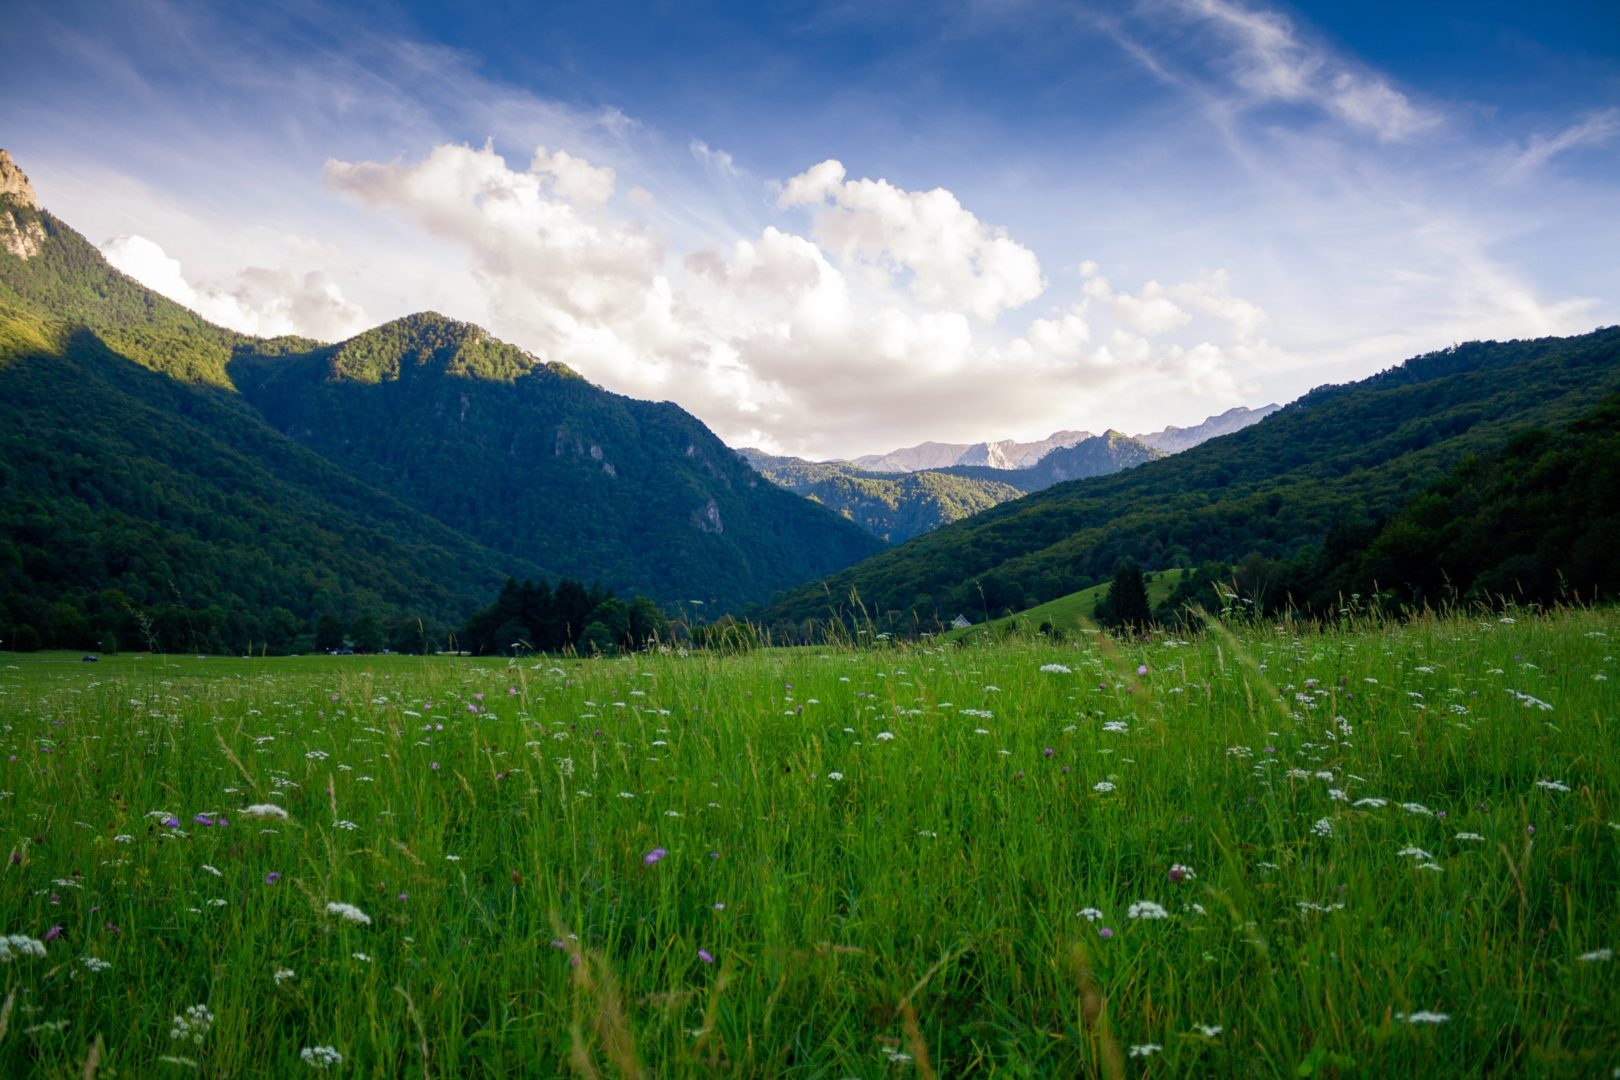 Landscape image of field in front of mountains evening time